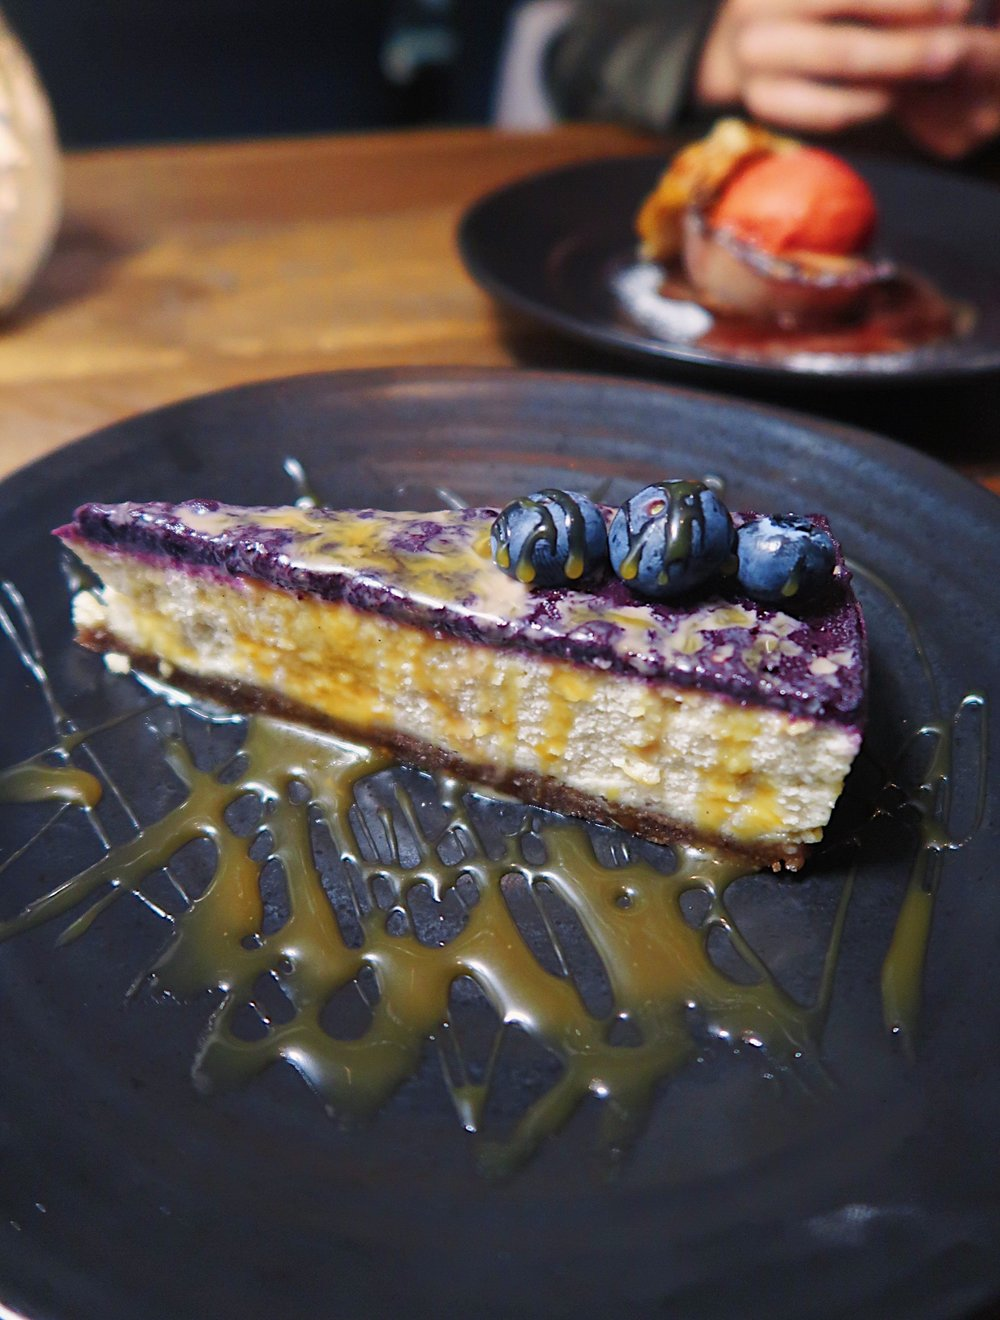 Blueberry & pecan cheesecake